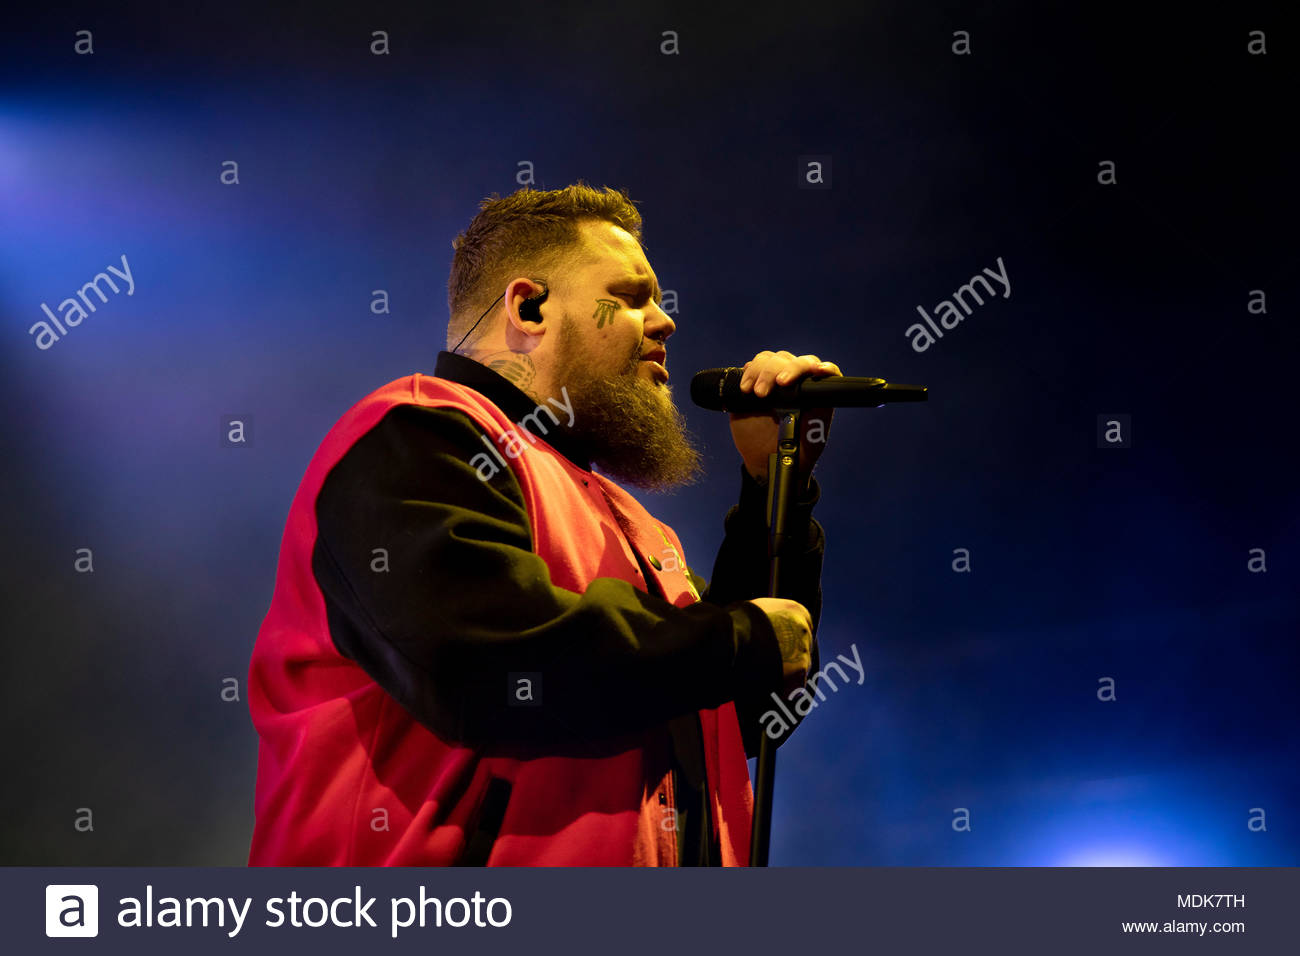 Rag'n'Bone Man (singer Rory Graham) performing live at the first edition of MUSILAC Mont-Blanc music festival in Chamonix (France) - Thursday 19 april 2018 - Stock Image